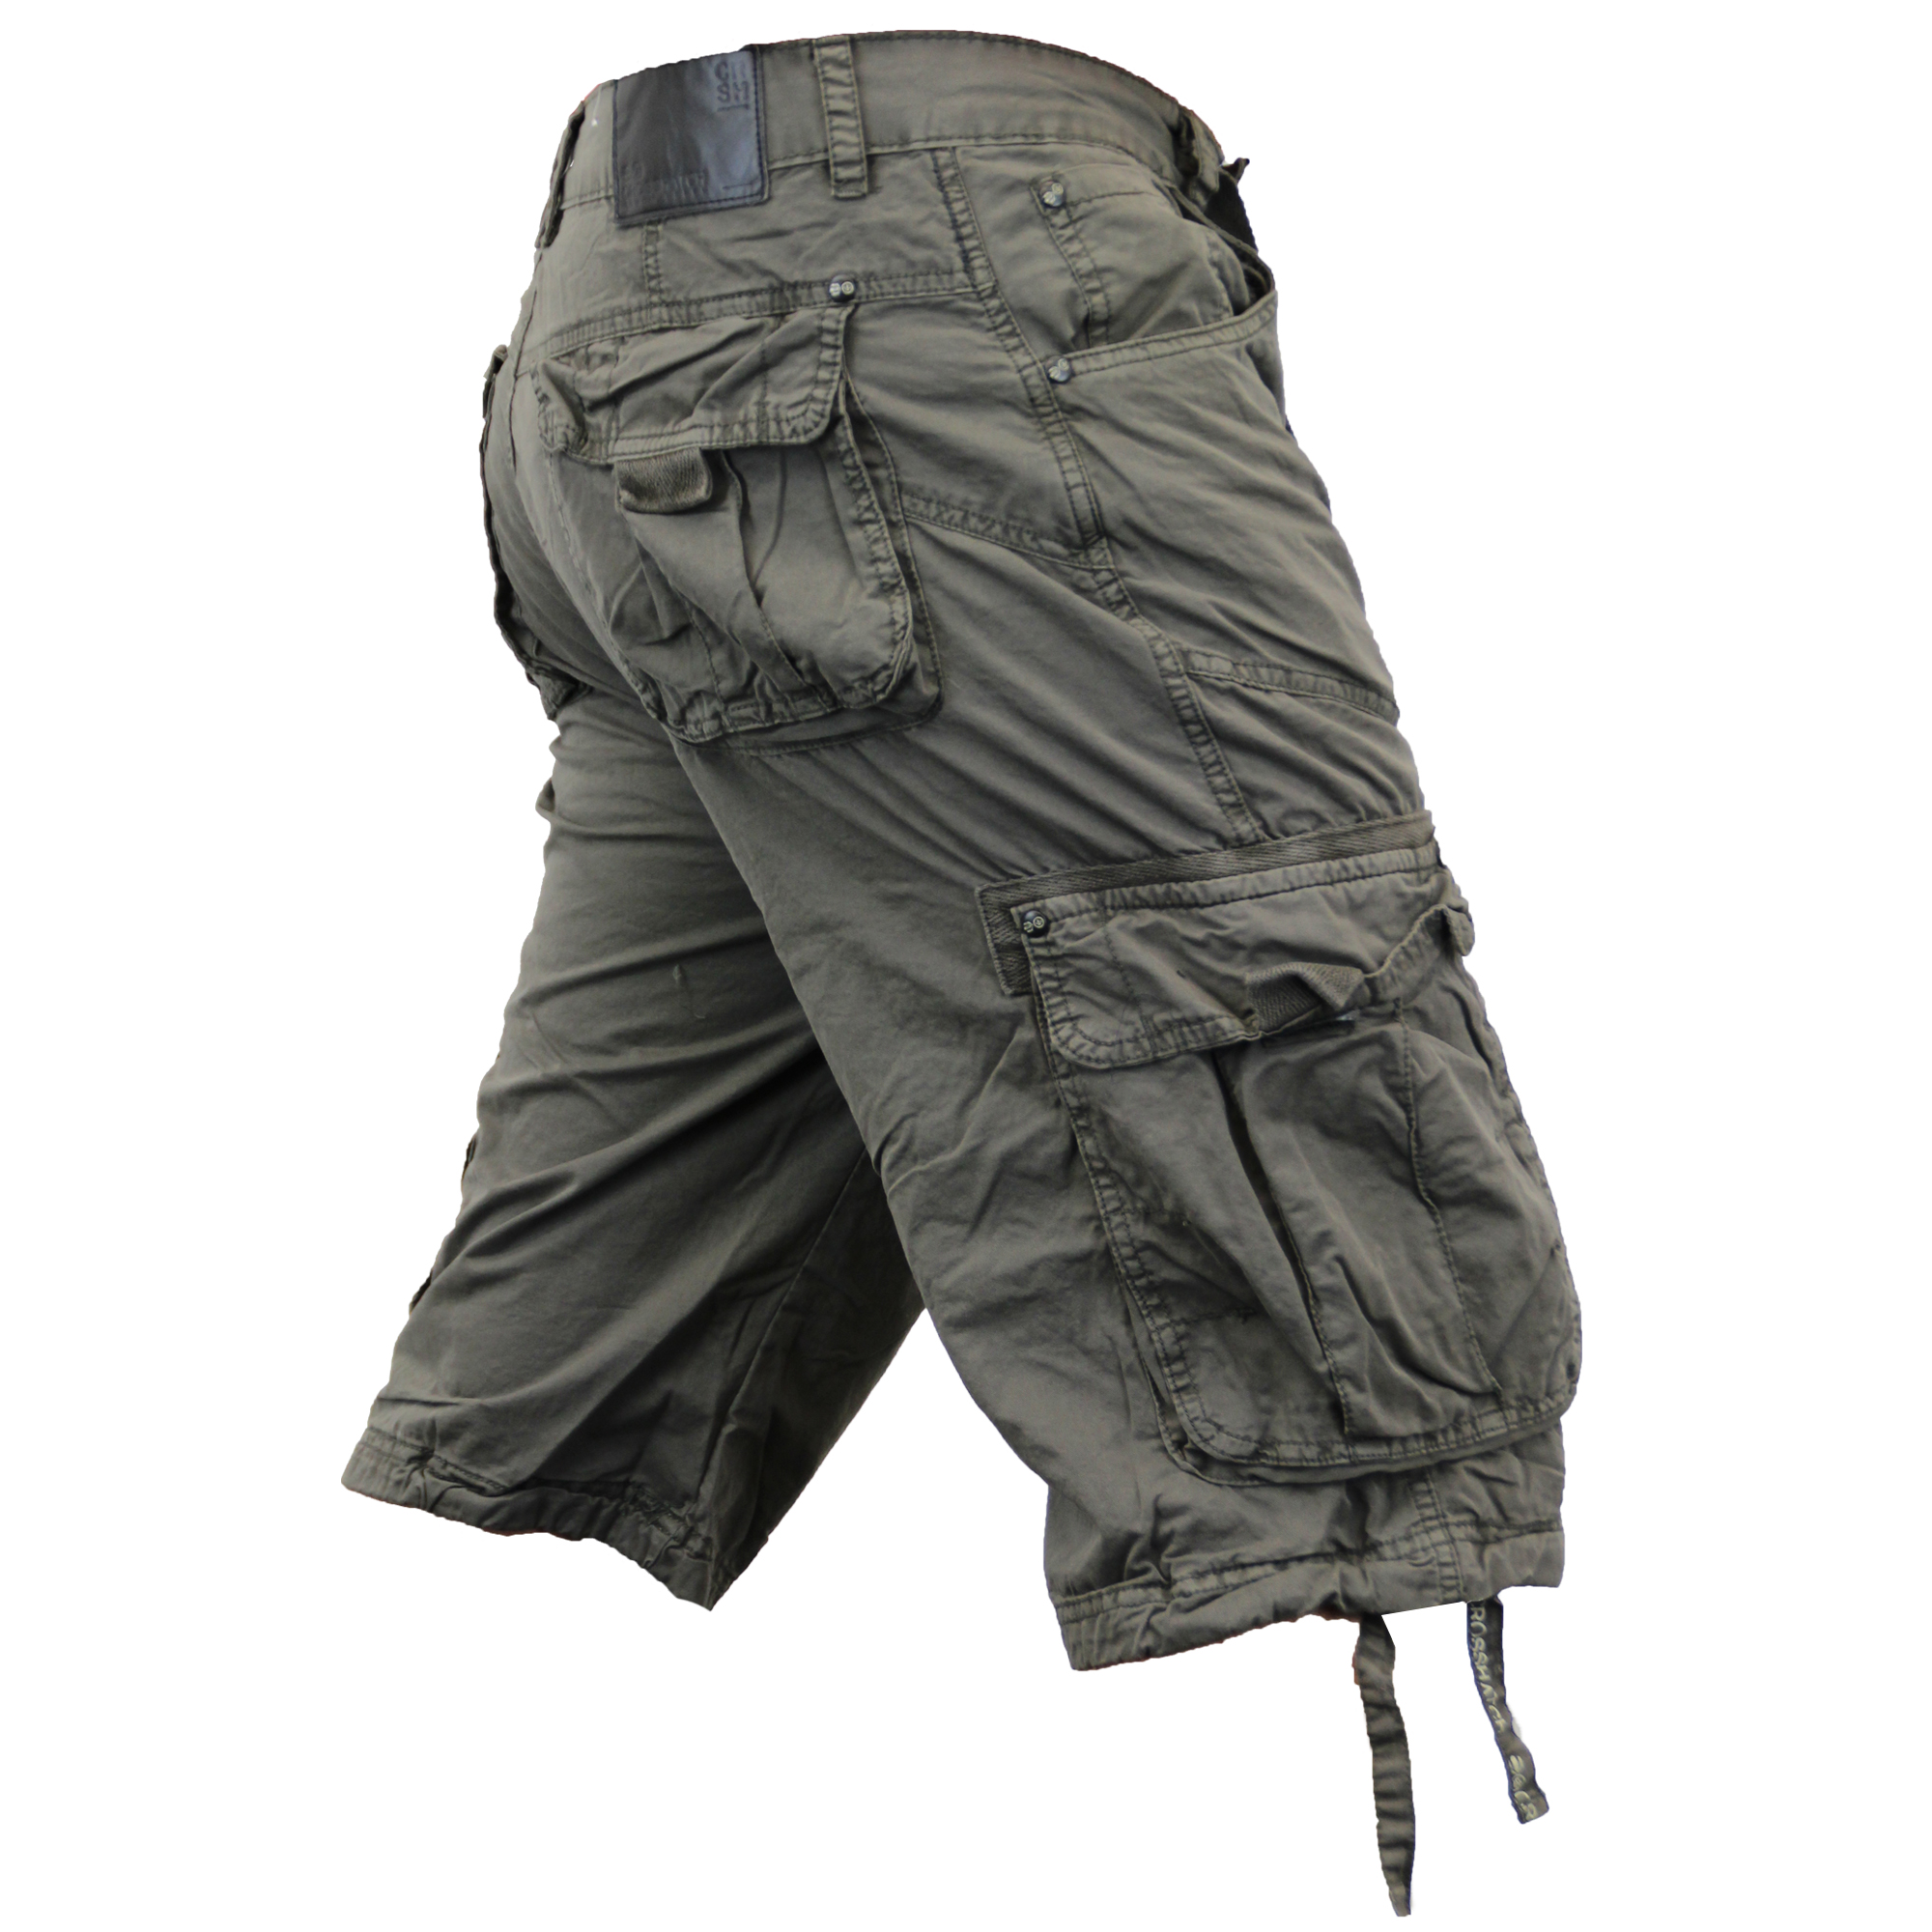 herren kampf cargo shorts crosshatch knielang norbury baumwolle oprahtwill ebay. Black Bedroom Furniture Sets. Home Design Ideas